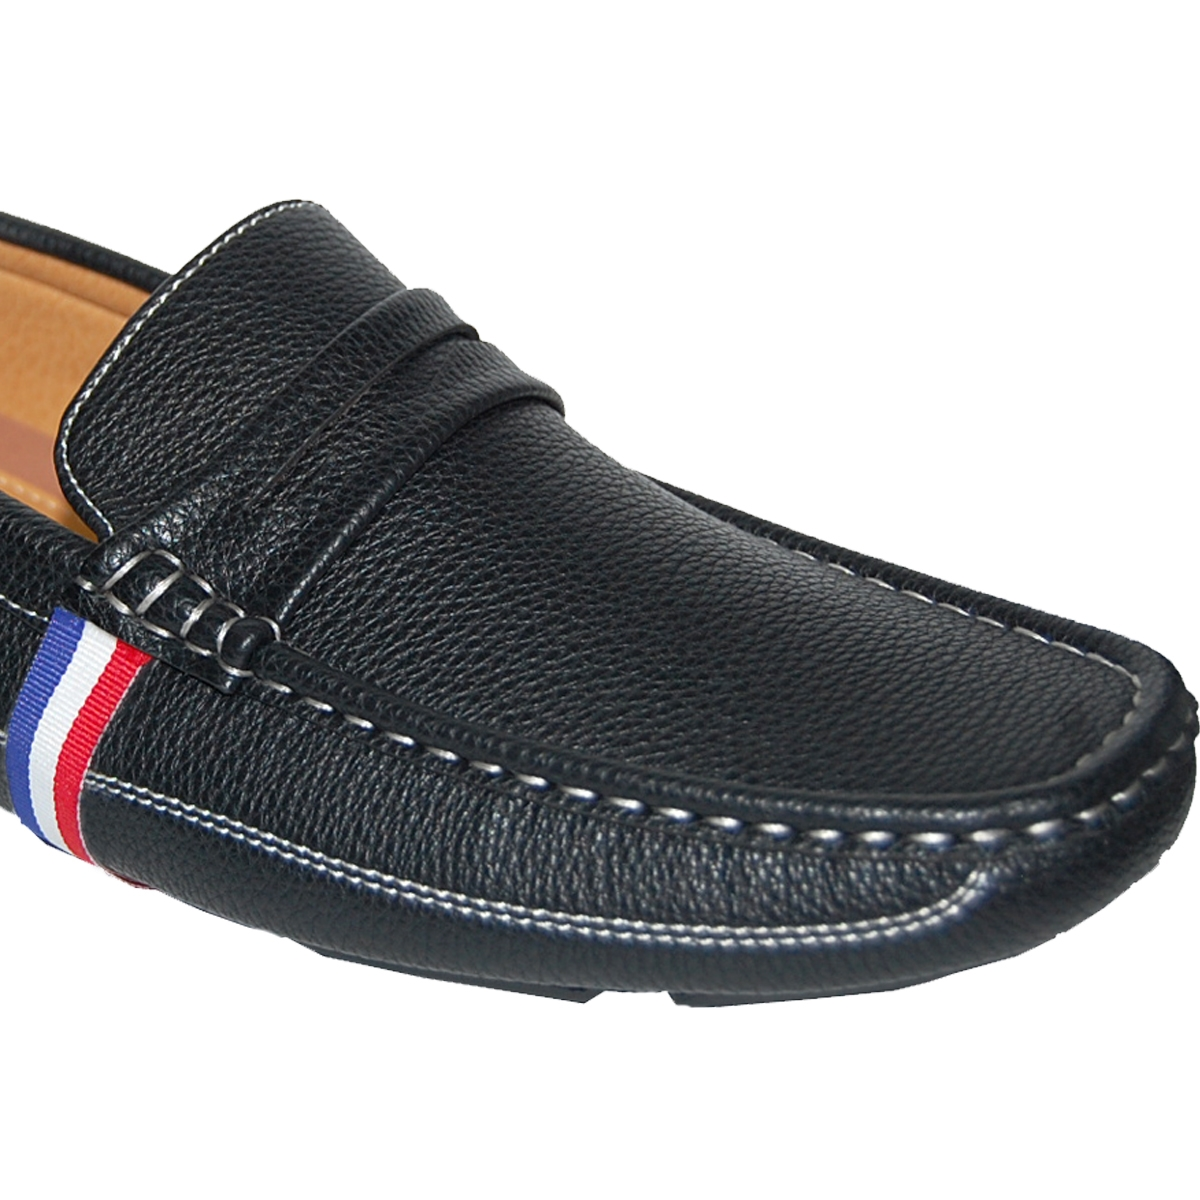 KRAZY SHOE ARTISTS Blue, White And Red Handcrafted Ornament Men's Loafer